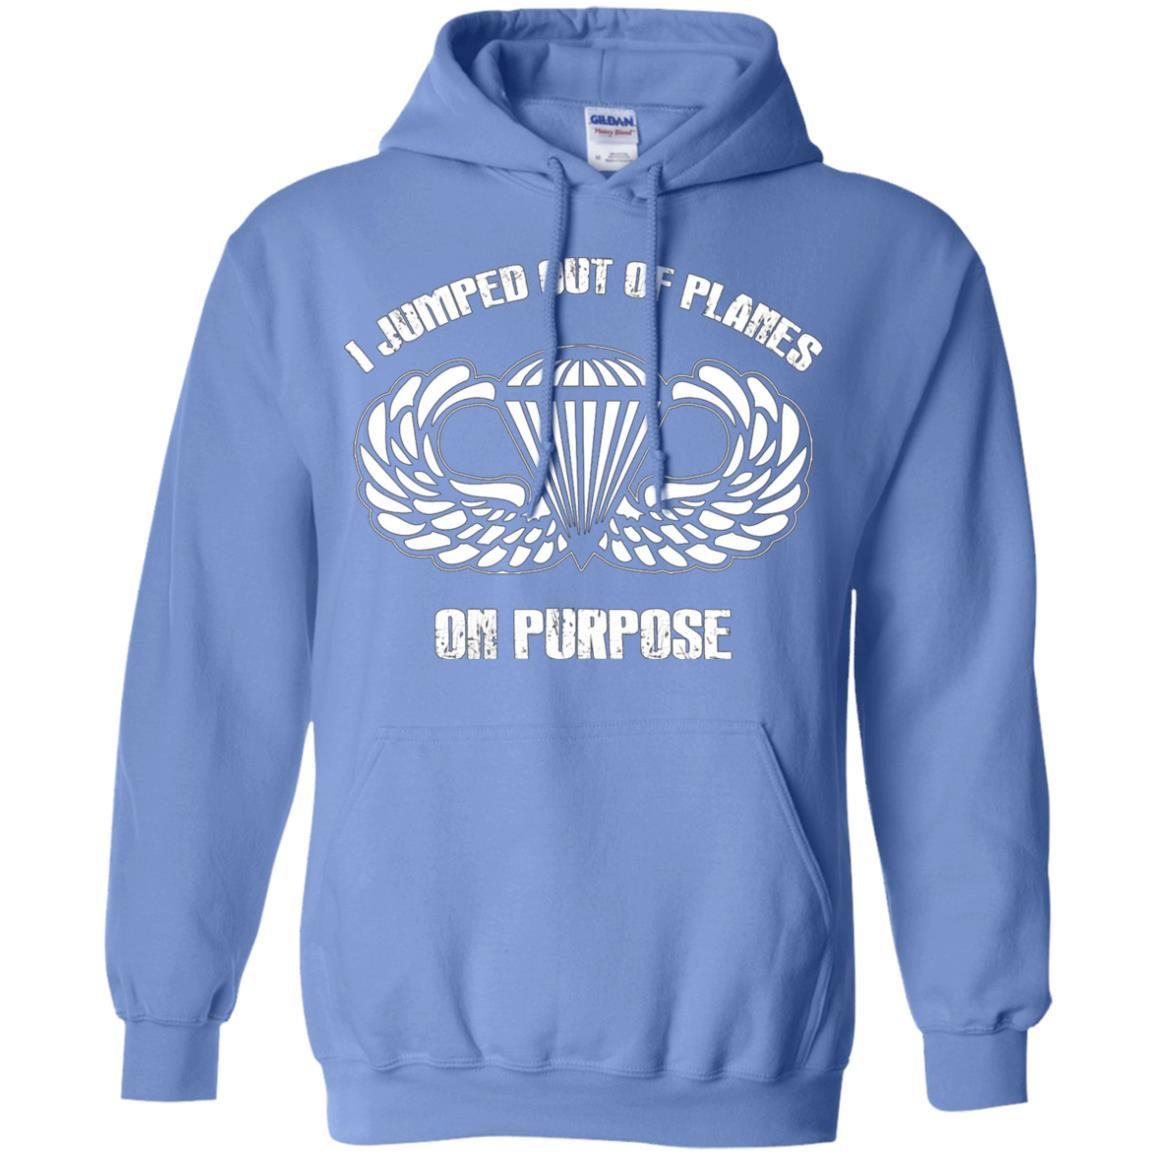 I jumped out of planes on purpose, Airborne - Pullover Hoodie Carolina Blue / 5XL